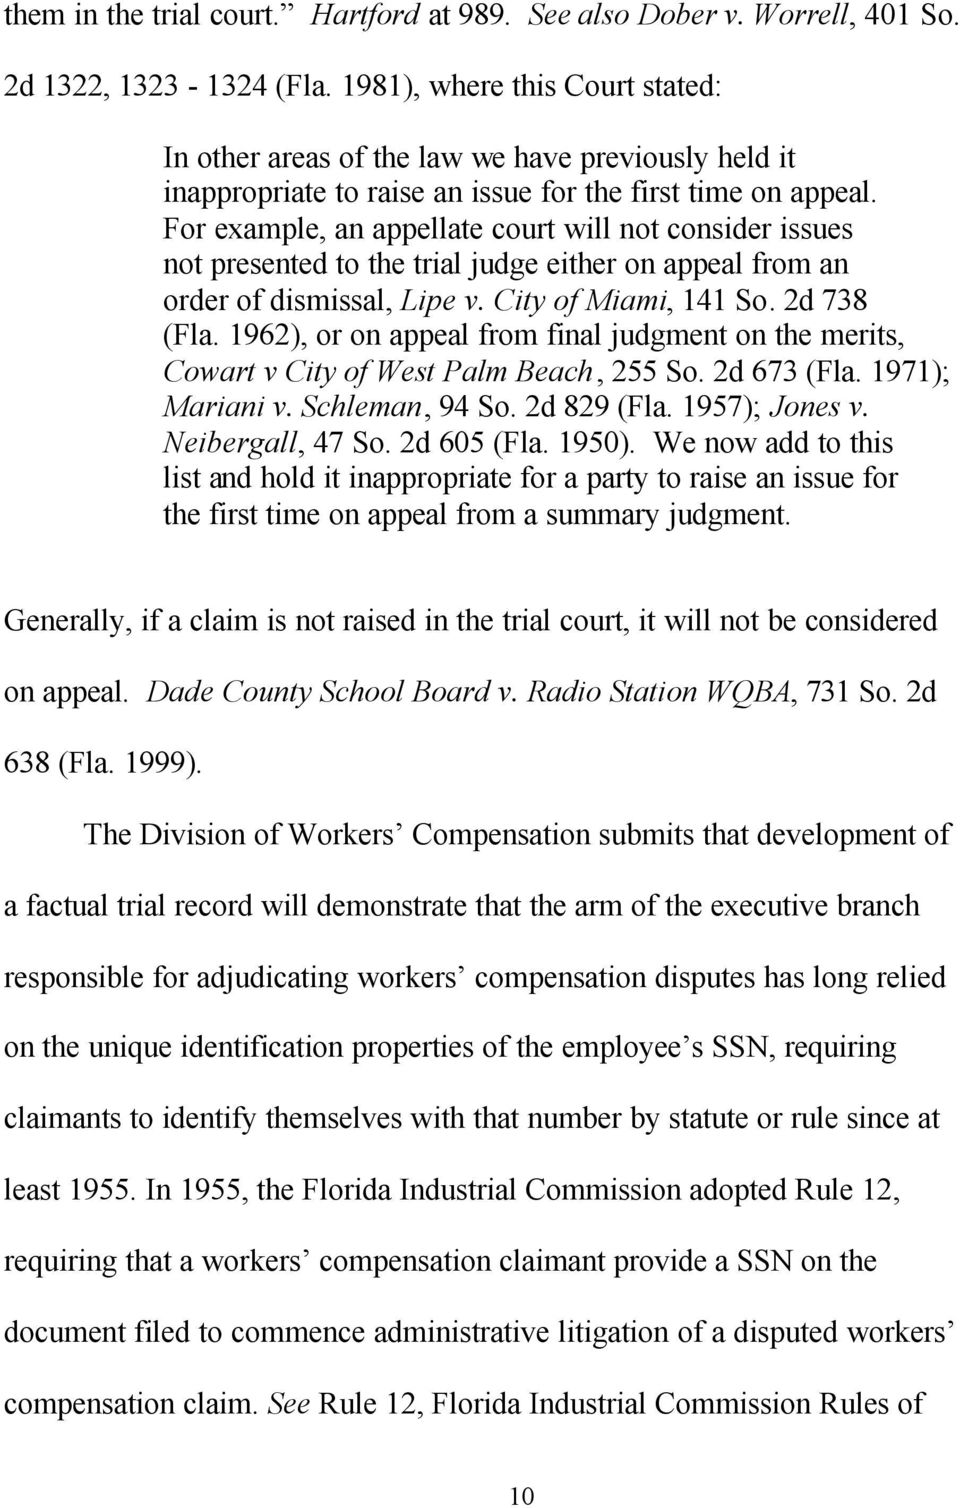 For example, an appellate court will not consider issues not presented to the trial judge either on appeal from an order of dismissal, Lipe v. City of Miami, 141 So. 2d 738 (Fla.